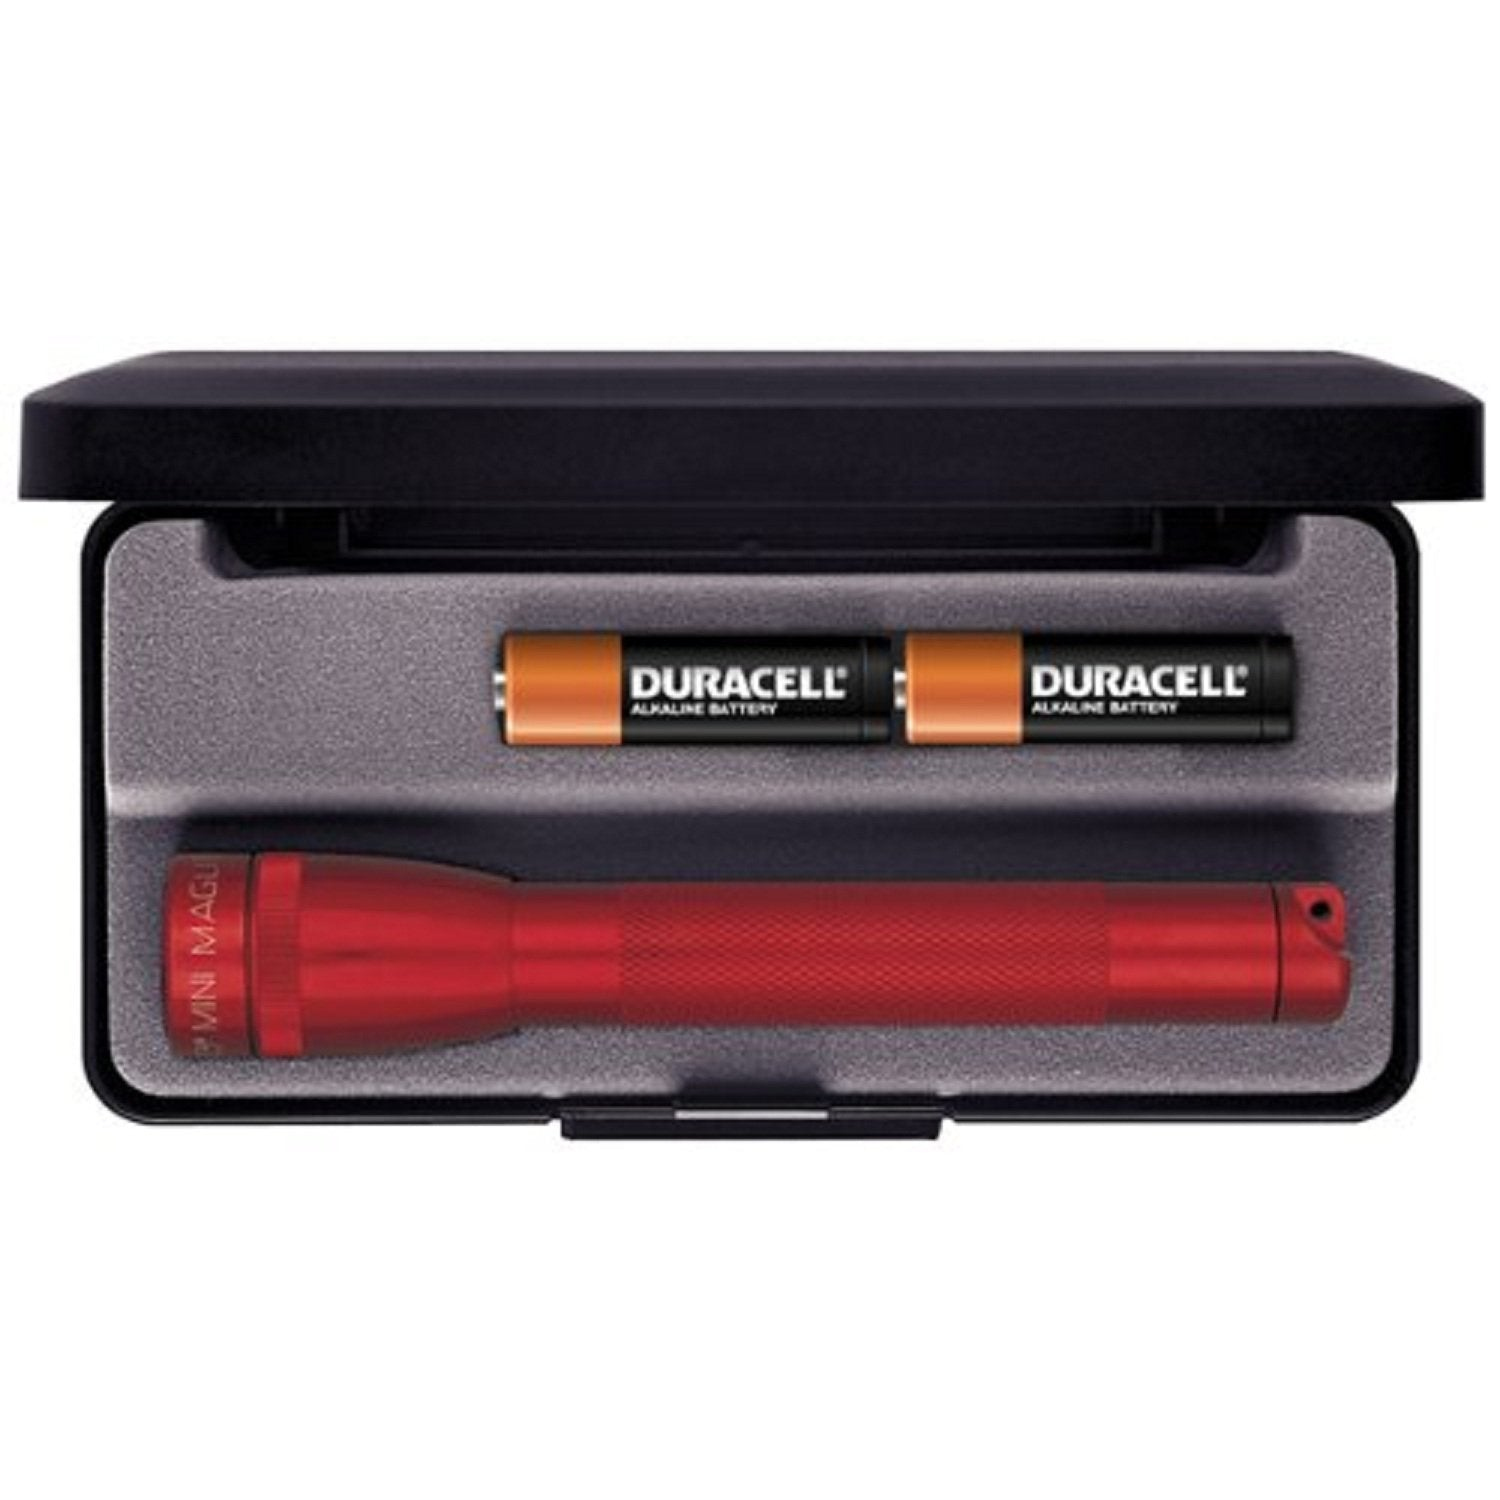 Maglite 2 Cell AA Mini Maglite Flashlight Red Tactical Gear Australia Supplier Distributor Dealer